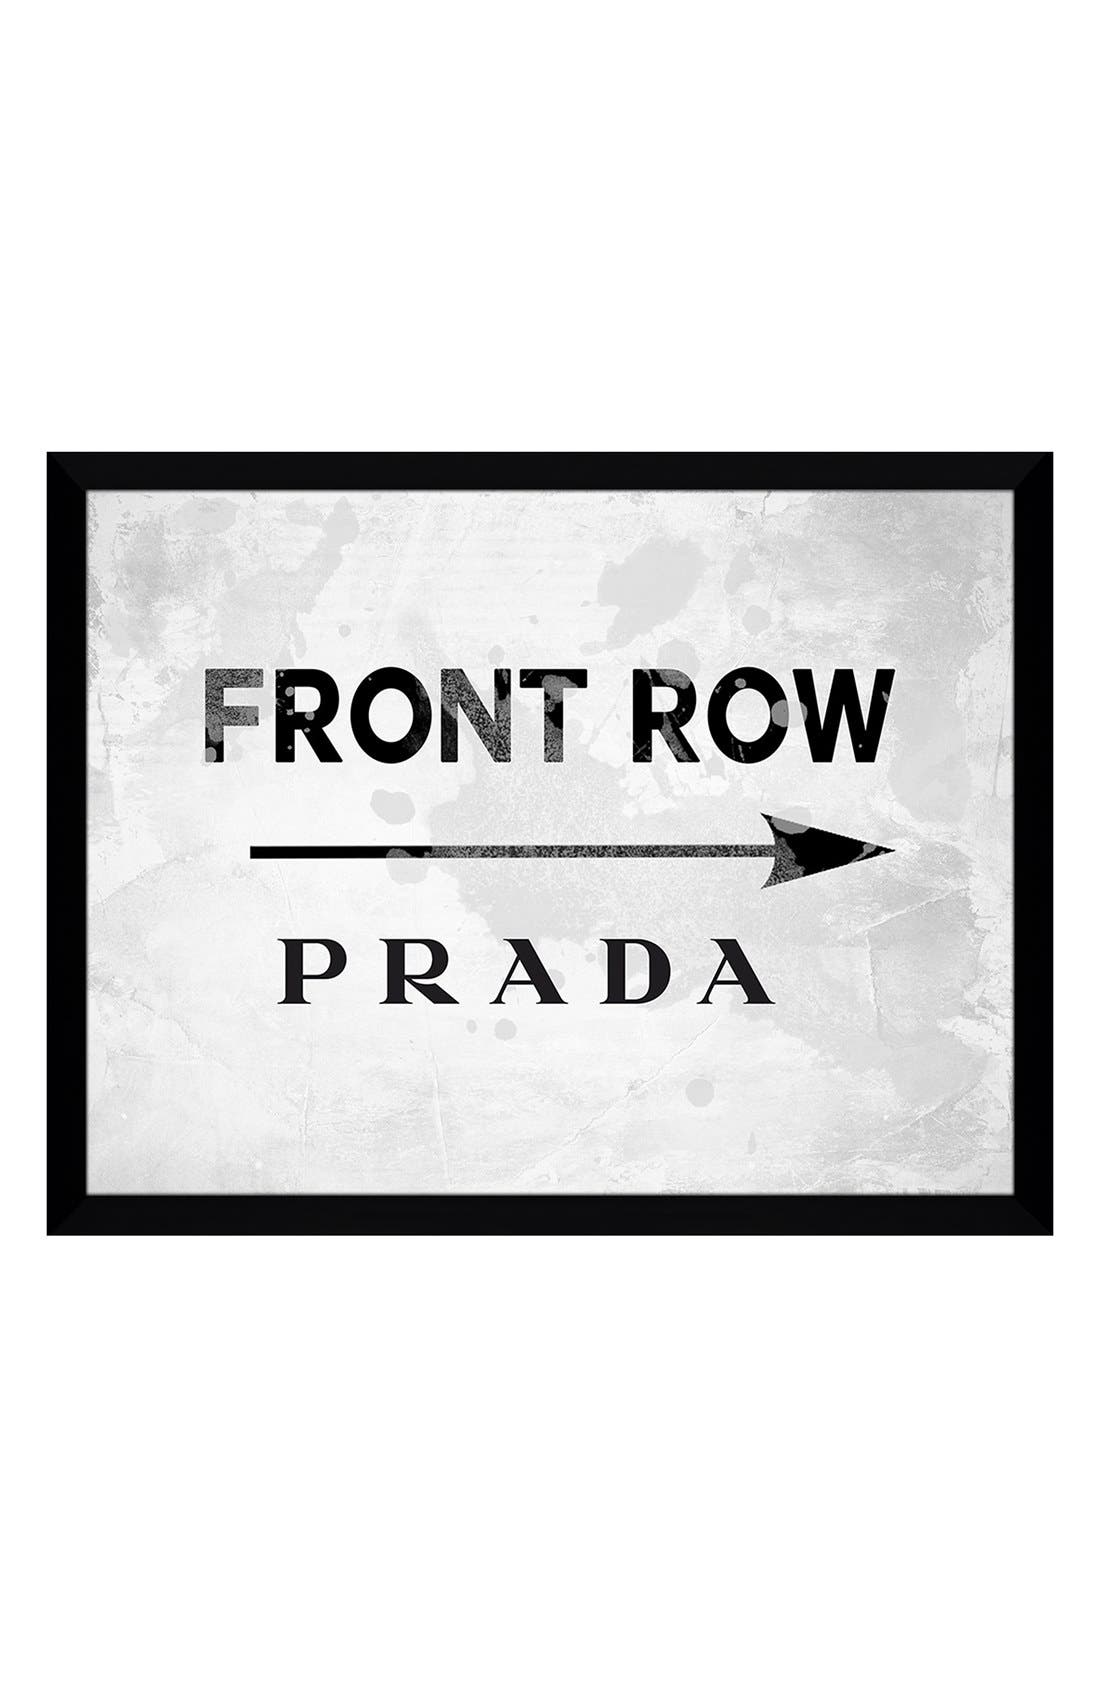 Alternate Image 1 Selected - Picture Perfect 'Front Row Prada' Fine Art Print